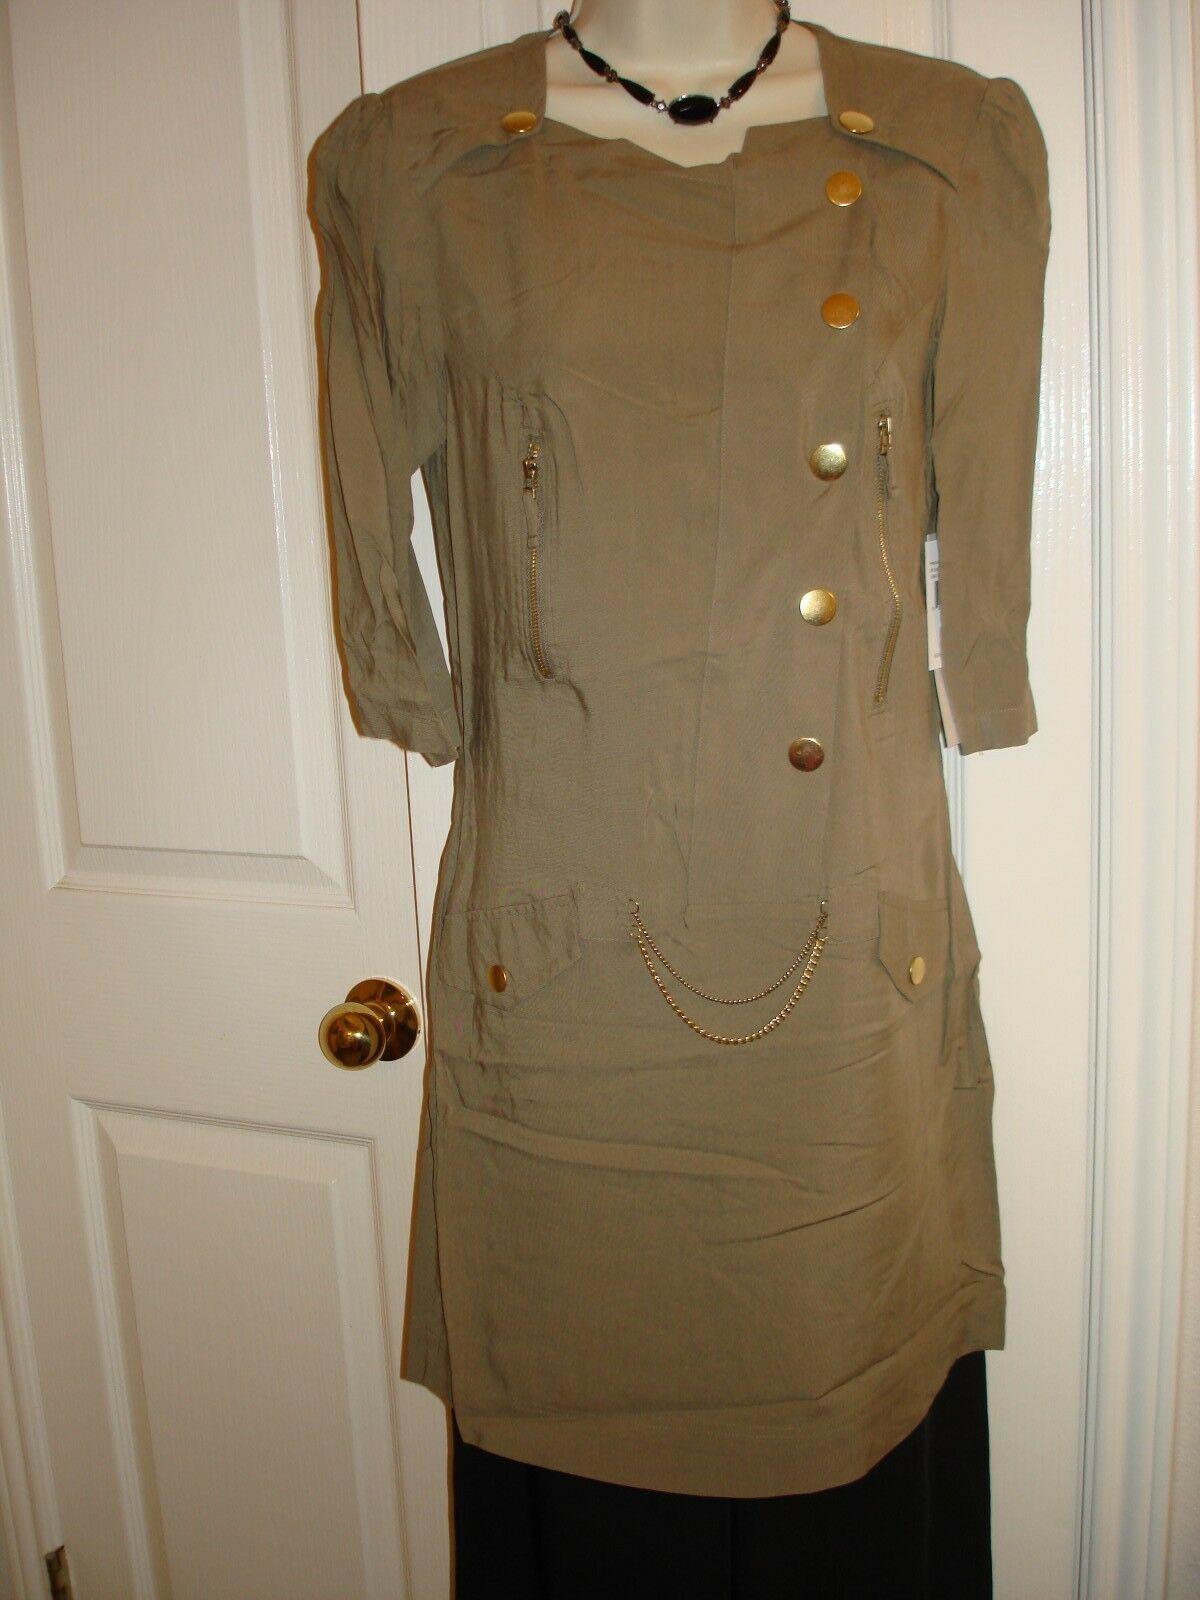 Kensie Three Quarter Sleeve Twill with Hardware Dress. Size  S, M